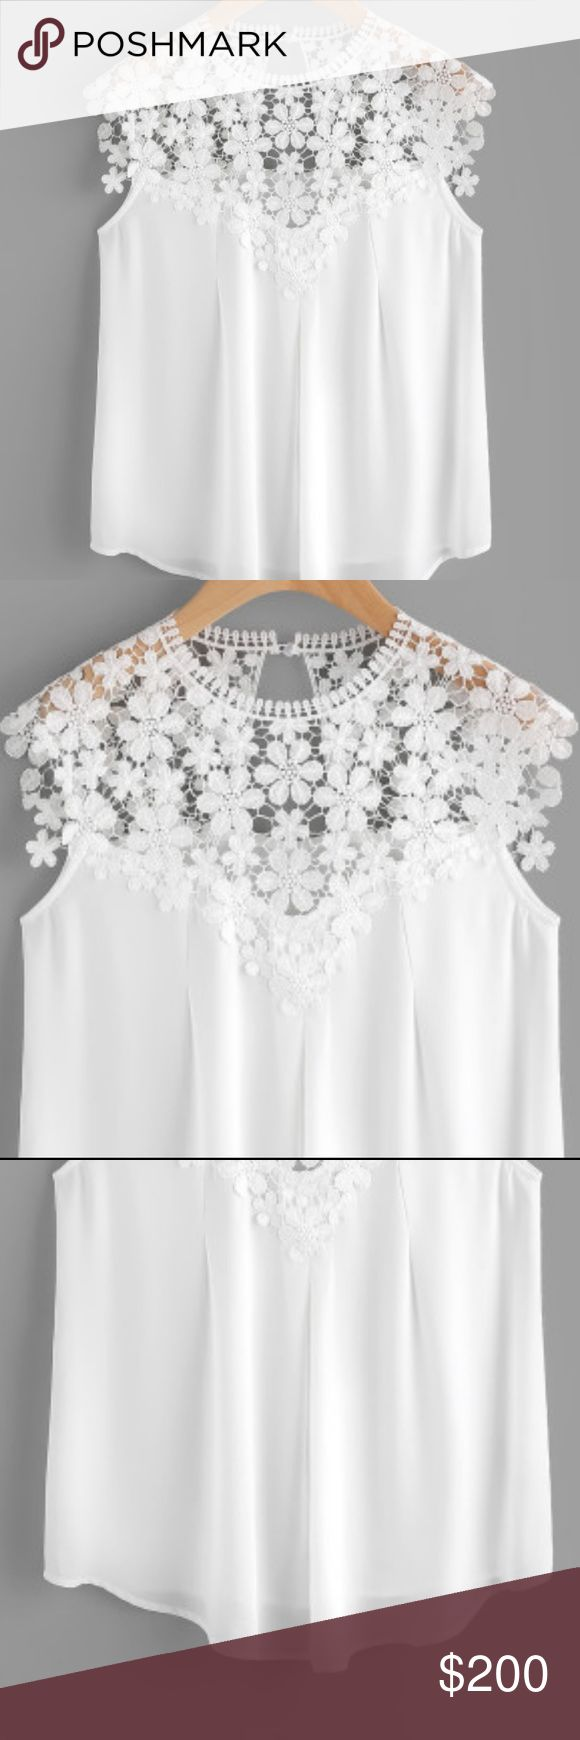 Keyhole Back Daisy Lace Shoulder Shell Top Material : 100% Polyester Color : White Type : Sheer, Tunic Decoration : Button Sleeve Length : Sleeveless Fabric : Fabric has no stretch Season : Summer Shoulder(cm) : XS:41cm, S:42cm, M:43cm, L:44cm Bust(cm) : XS:89cm, S:93cm, M:97cm, L:101cm Waist Size(cm) : XS:88cm, S:92cm, M:96cm, L:100cm Length(cm) : XS:67cm, S:68cm, M:69cm, L:70cm Size Available : XS,S,M, Orders May take longer than Posh standards for shipping. If we do not have an item in…